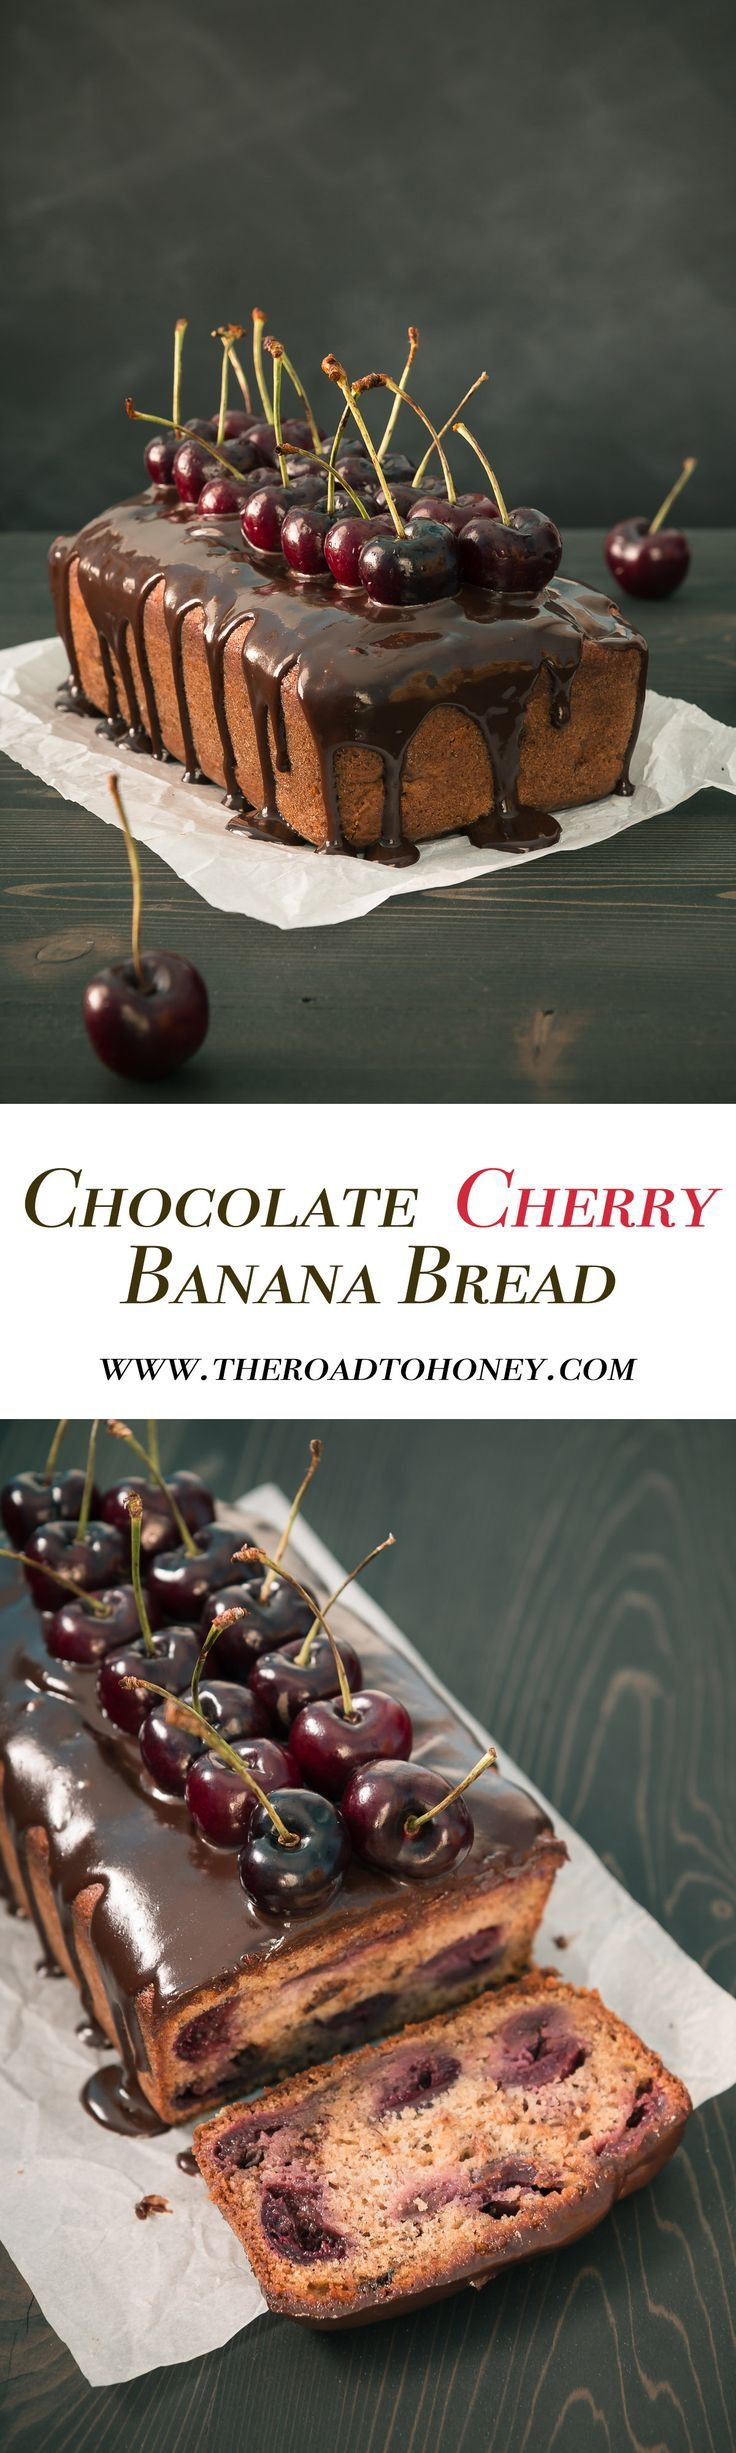 Chocolate Cherry Banana Bread - This elegant Chocolate Cherry Banana Bread is moist & delicious & sure to impress with juicy cherries, bits of chocolate, & a chocolate honey glaze.  Click for RECIPE.